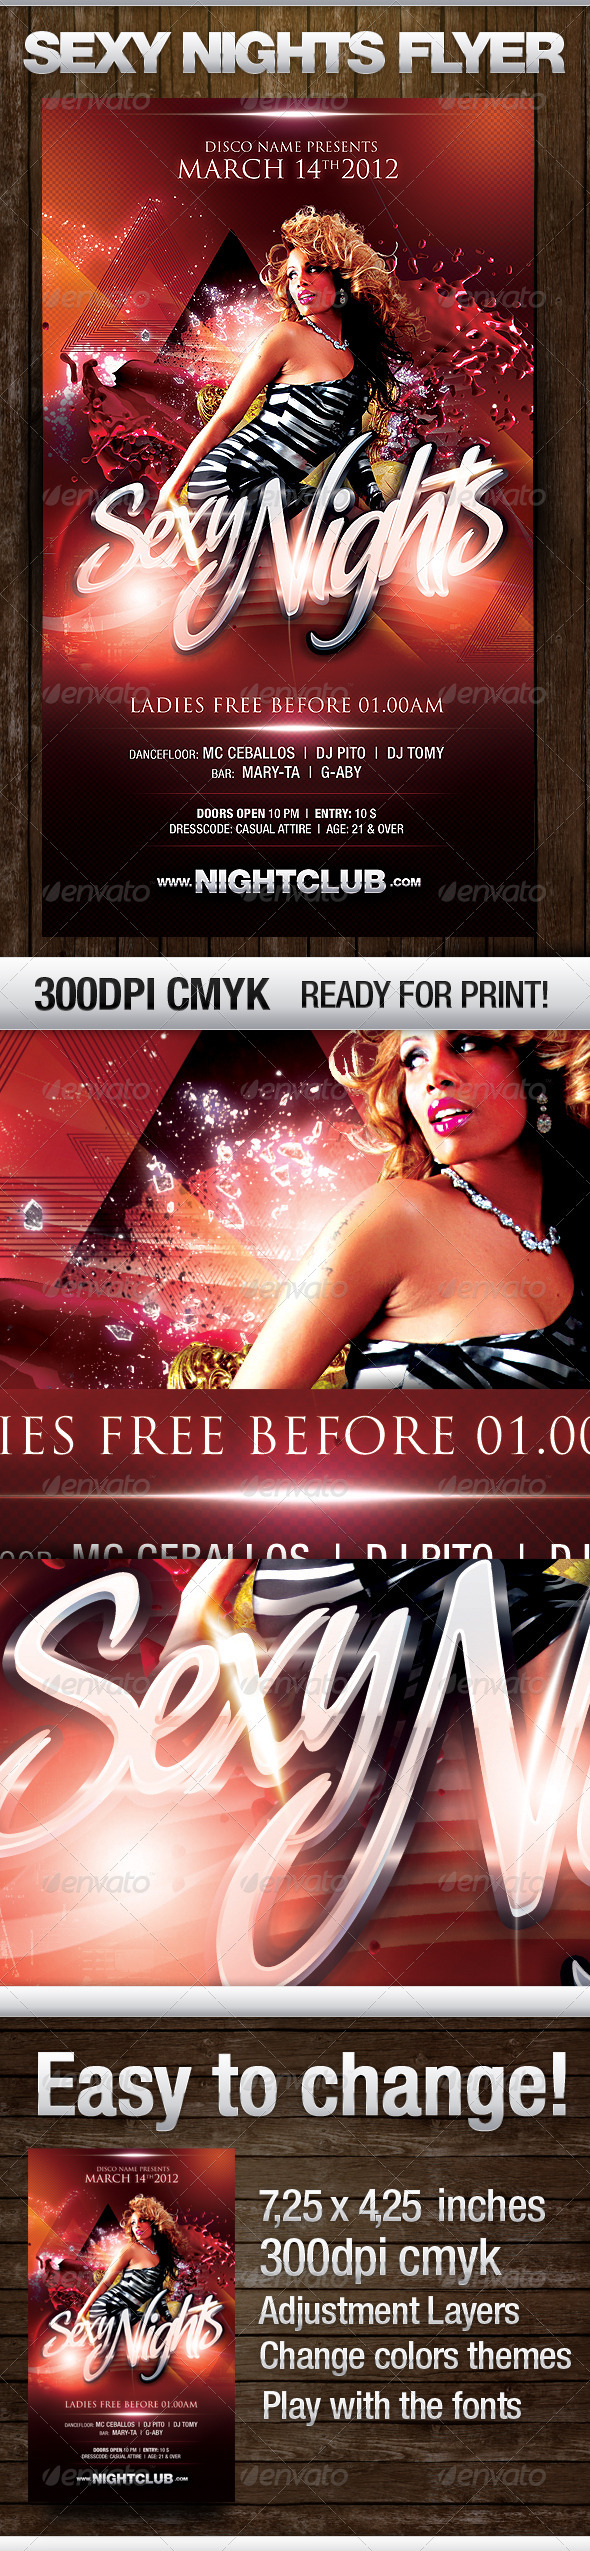 Sexy Nights Flyer - Flyers Print Templates